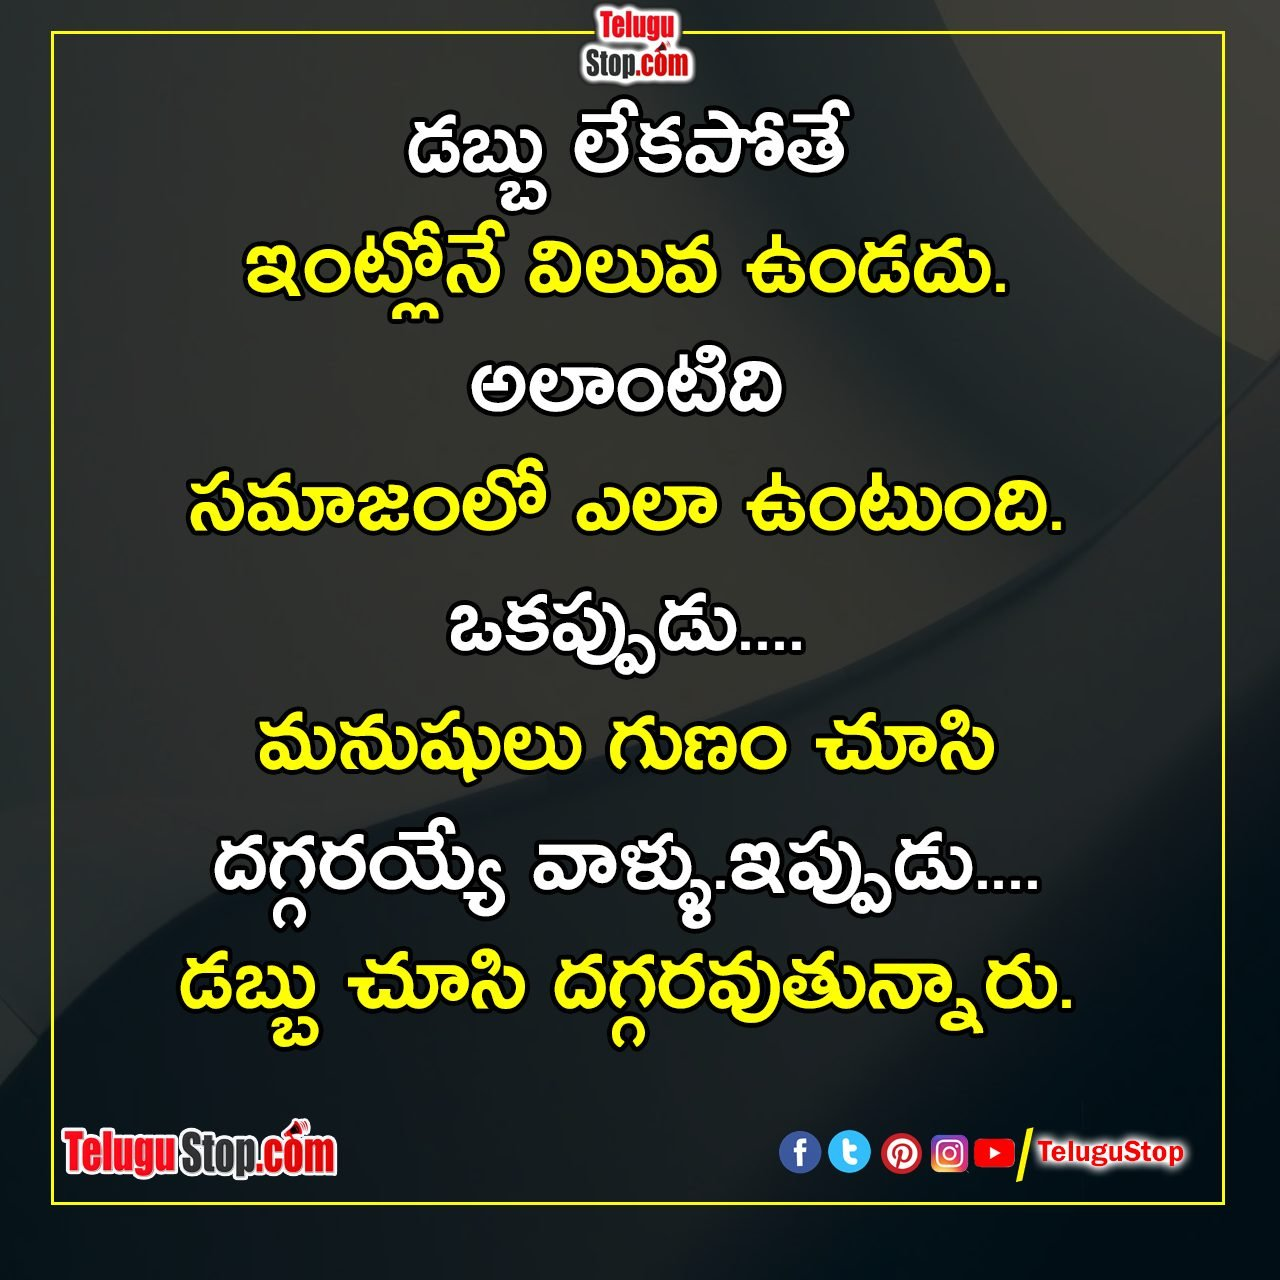 Telugu Donate And For The Man Inspirational Quotes, Money Is Not Worth It Otherwise Inspirational Quotes, Swami Vivekananda Inspirational Quotes, The Truth Of Life Inspirational Quotes-Telugu Daily Quotes - Inspirational/Motivational/Love/Friendship/Good Morning Quote